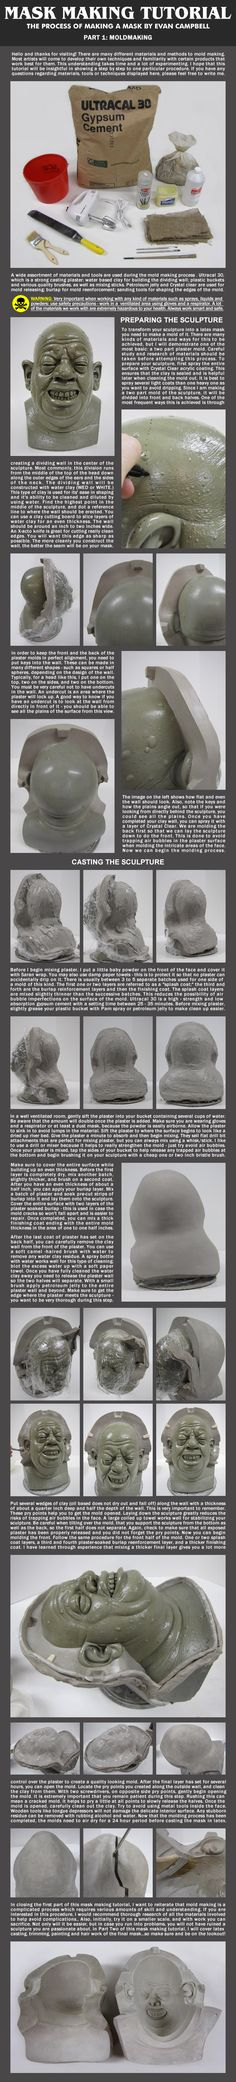 Mask Making Tutorial: Part 1 by *EvanCampbell on deviantART